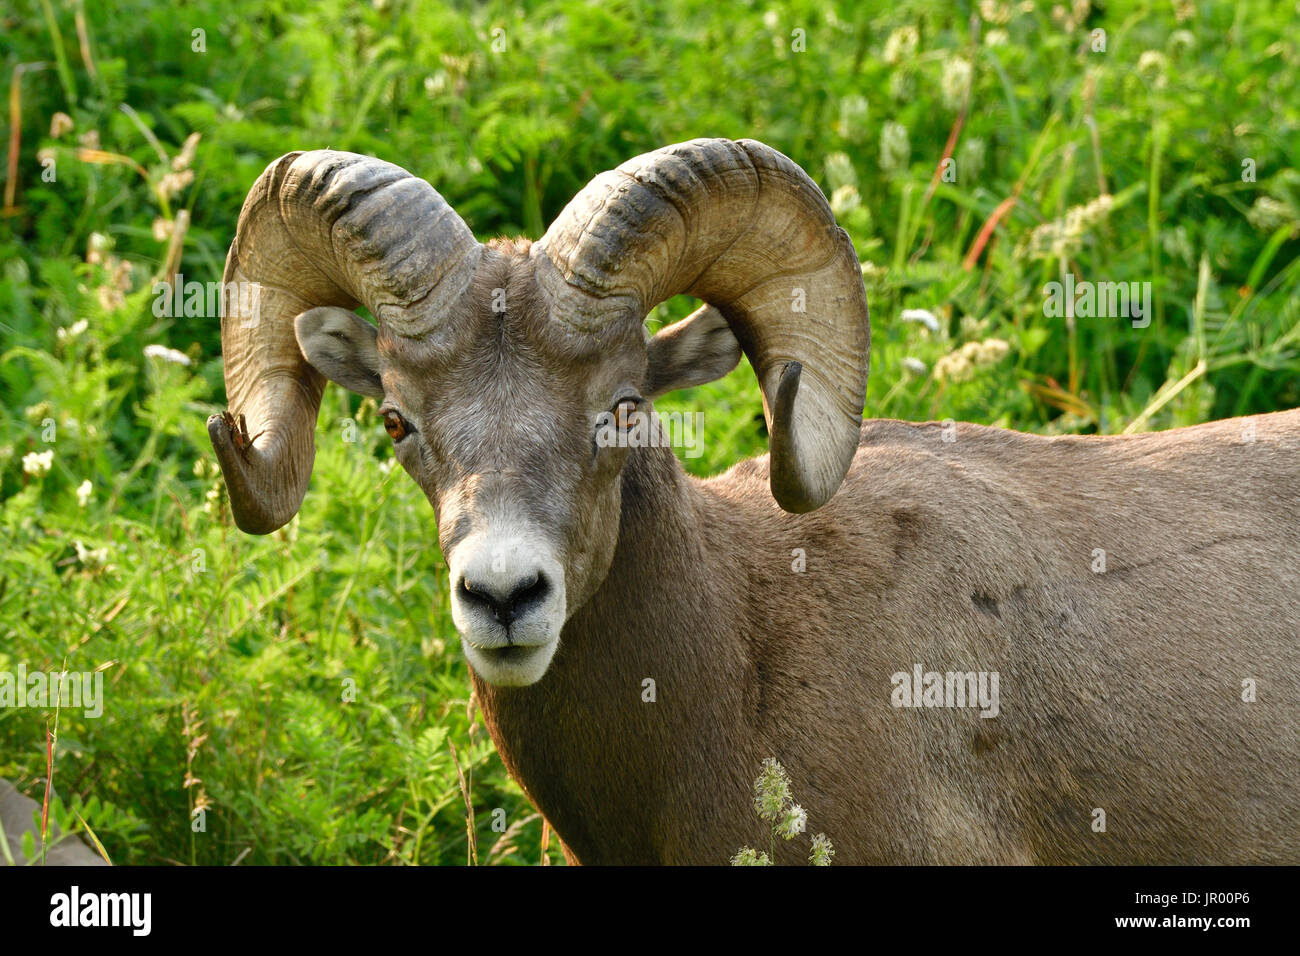 A portrait view of a wild Bighorn Sheep  'Ovis canadensis' standing in a field of green grasses and deep vegetation. - Stock Image